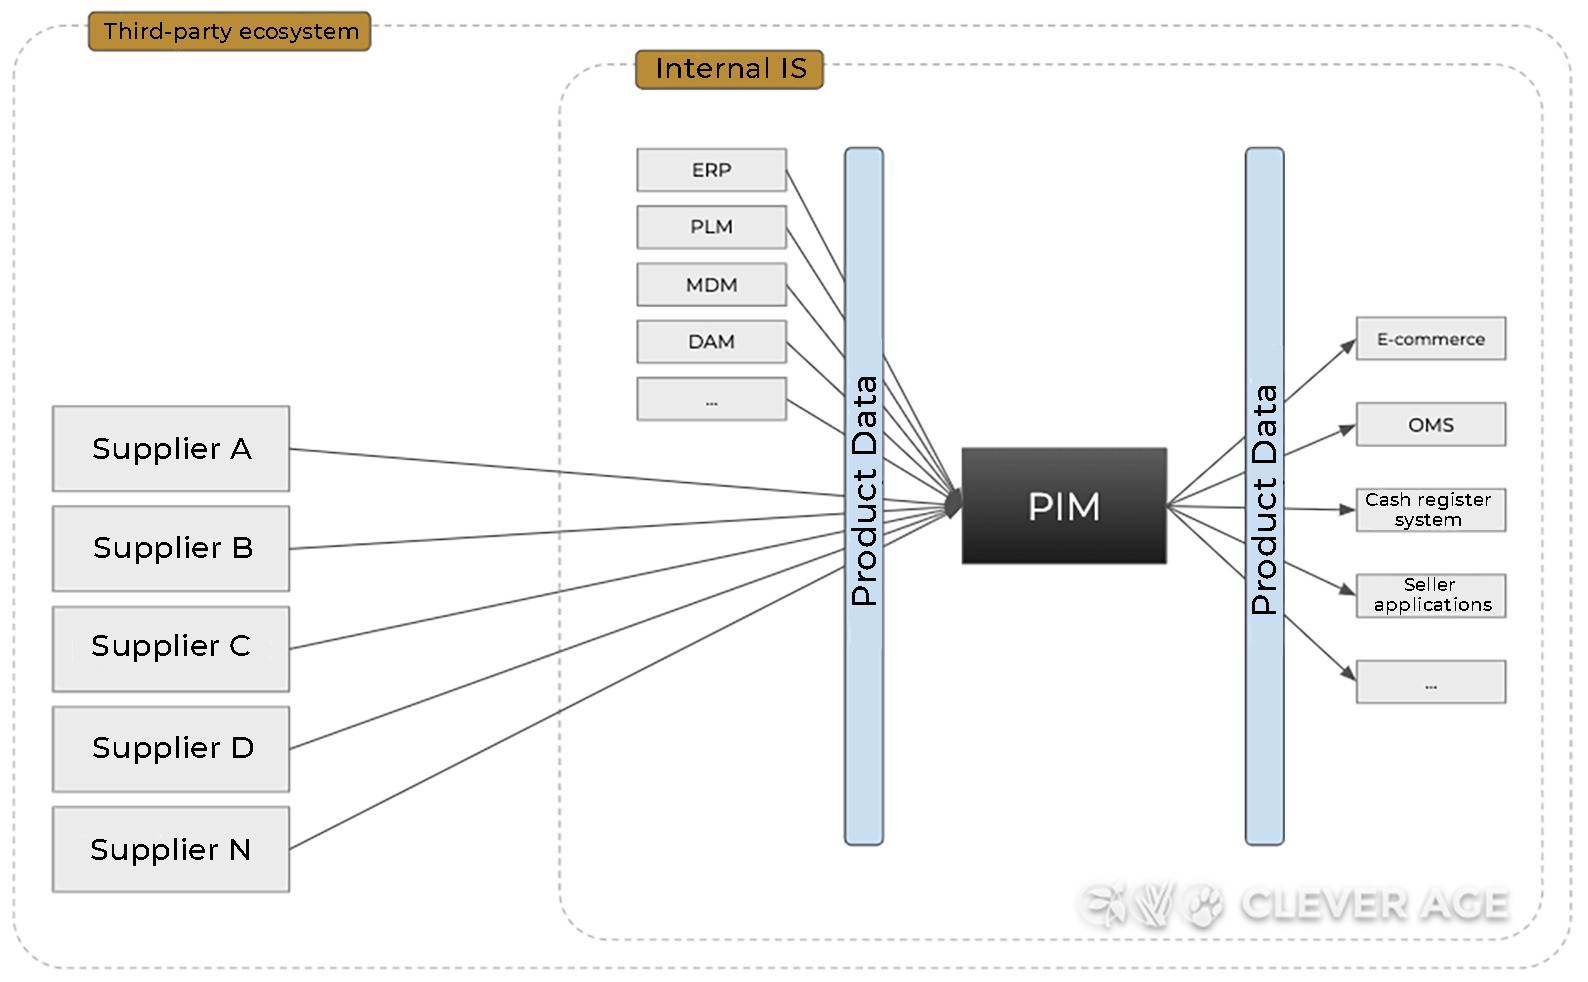 Architecture with multiple third-party flows (distributor view)